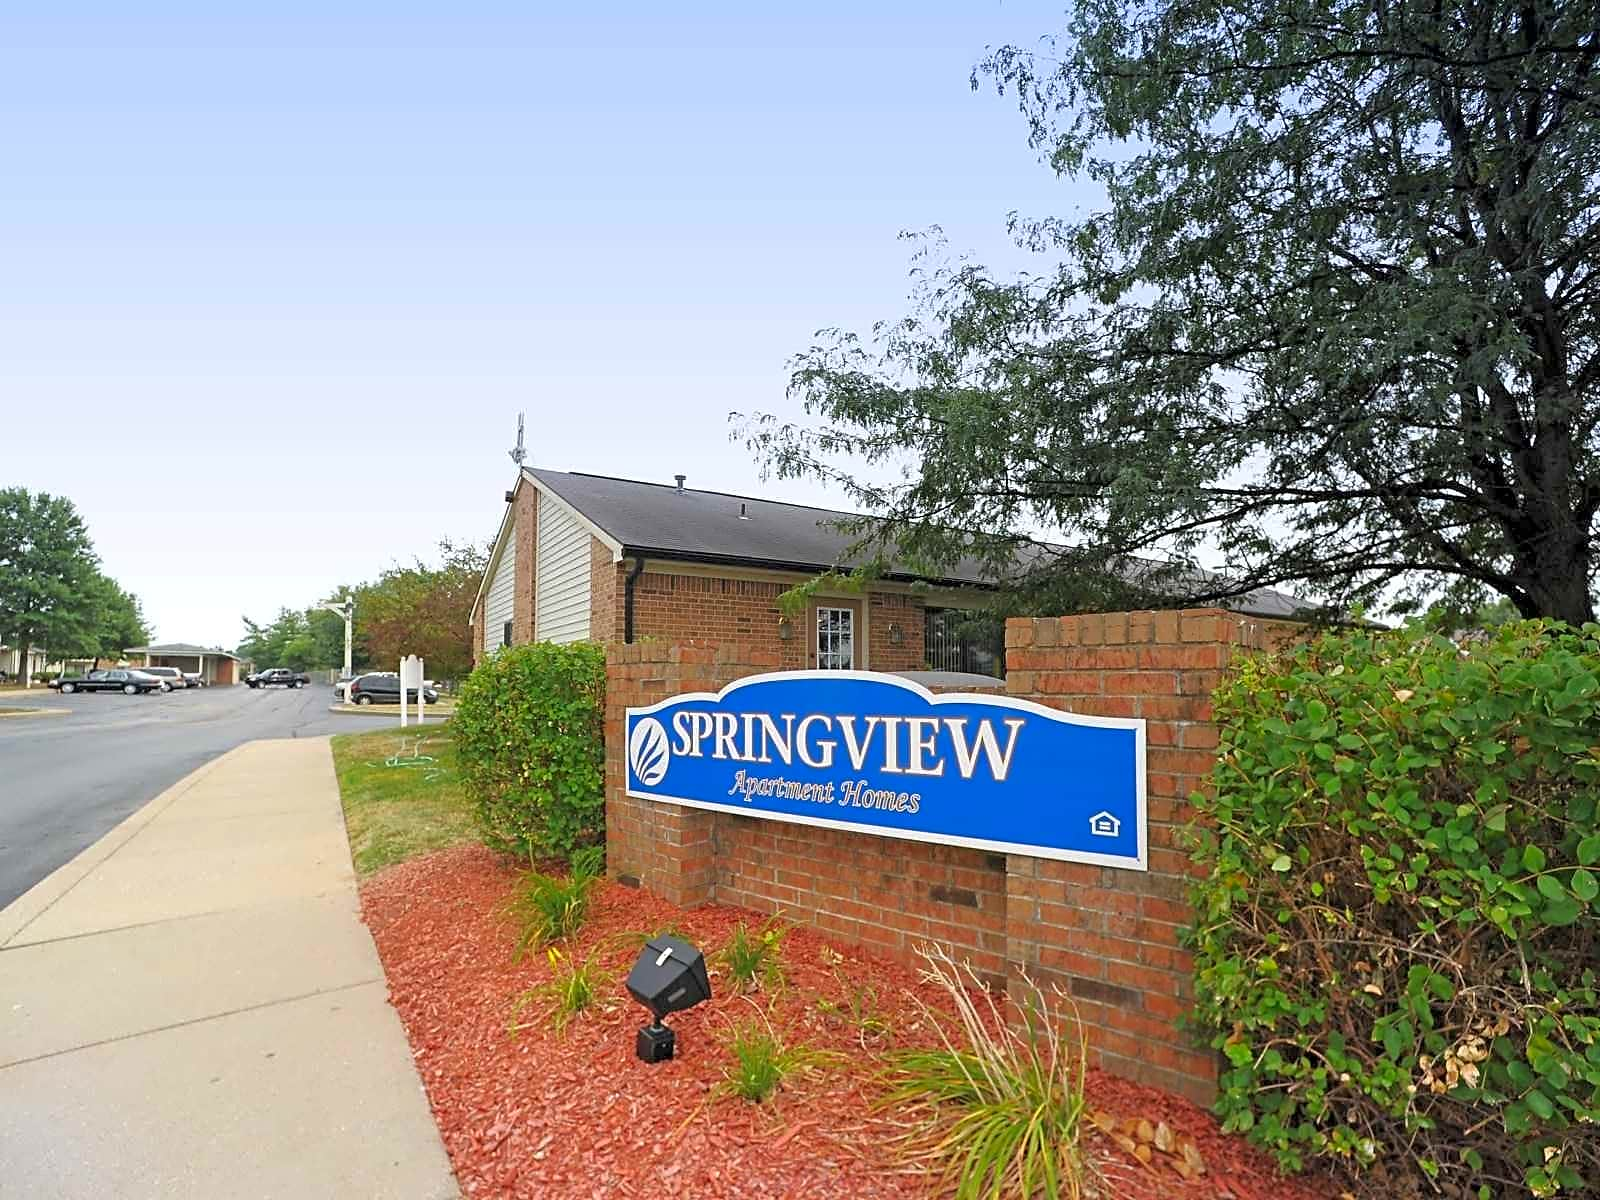 Apartments Near Ross Medical Education Center-Evansville Springview Apartment Homes for Ross Medical Education Center-Evansville Students in Evansville, IN